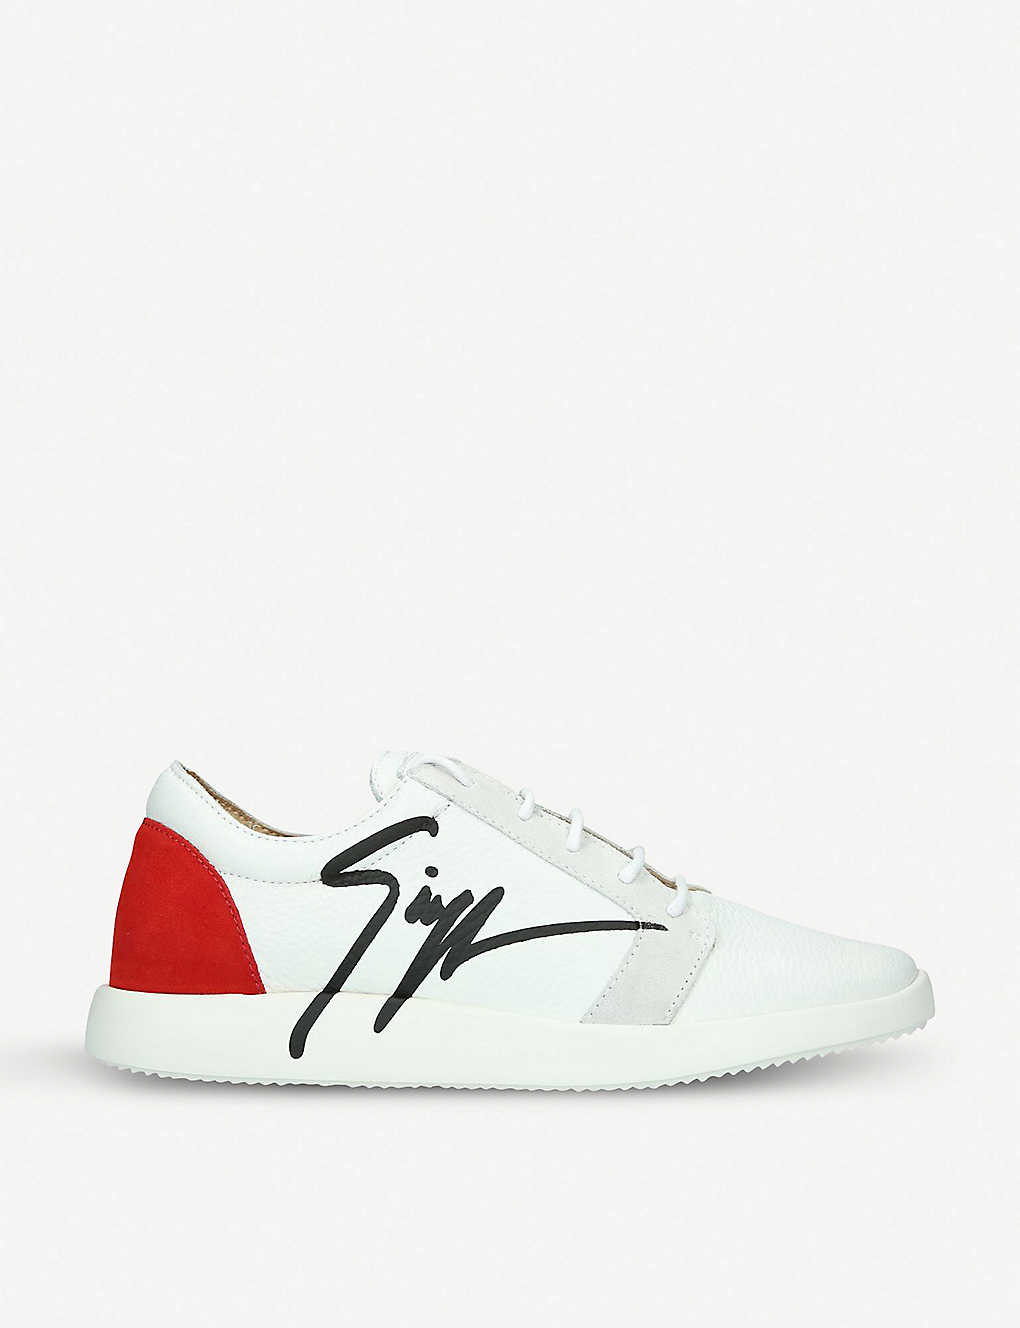 Giuseppe Zanotti G Runner leather and suede sneakers Purchase 9D51CY